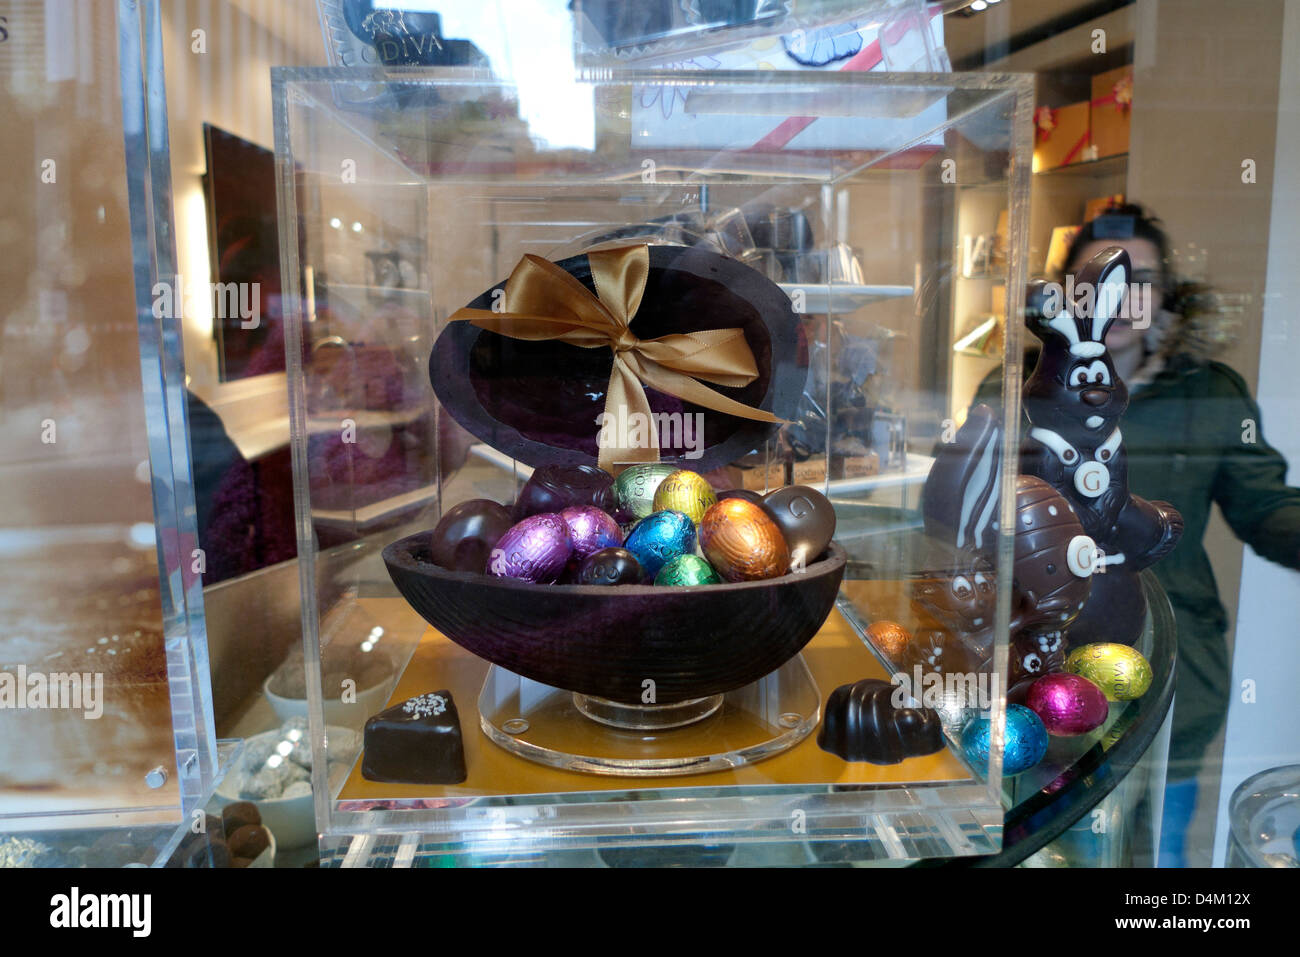 Godiva Store with a giant chocolate Easter Egg filled with small ...